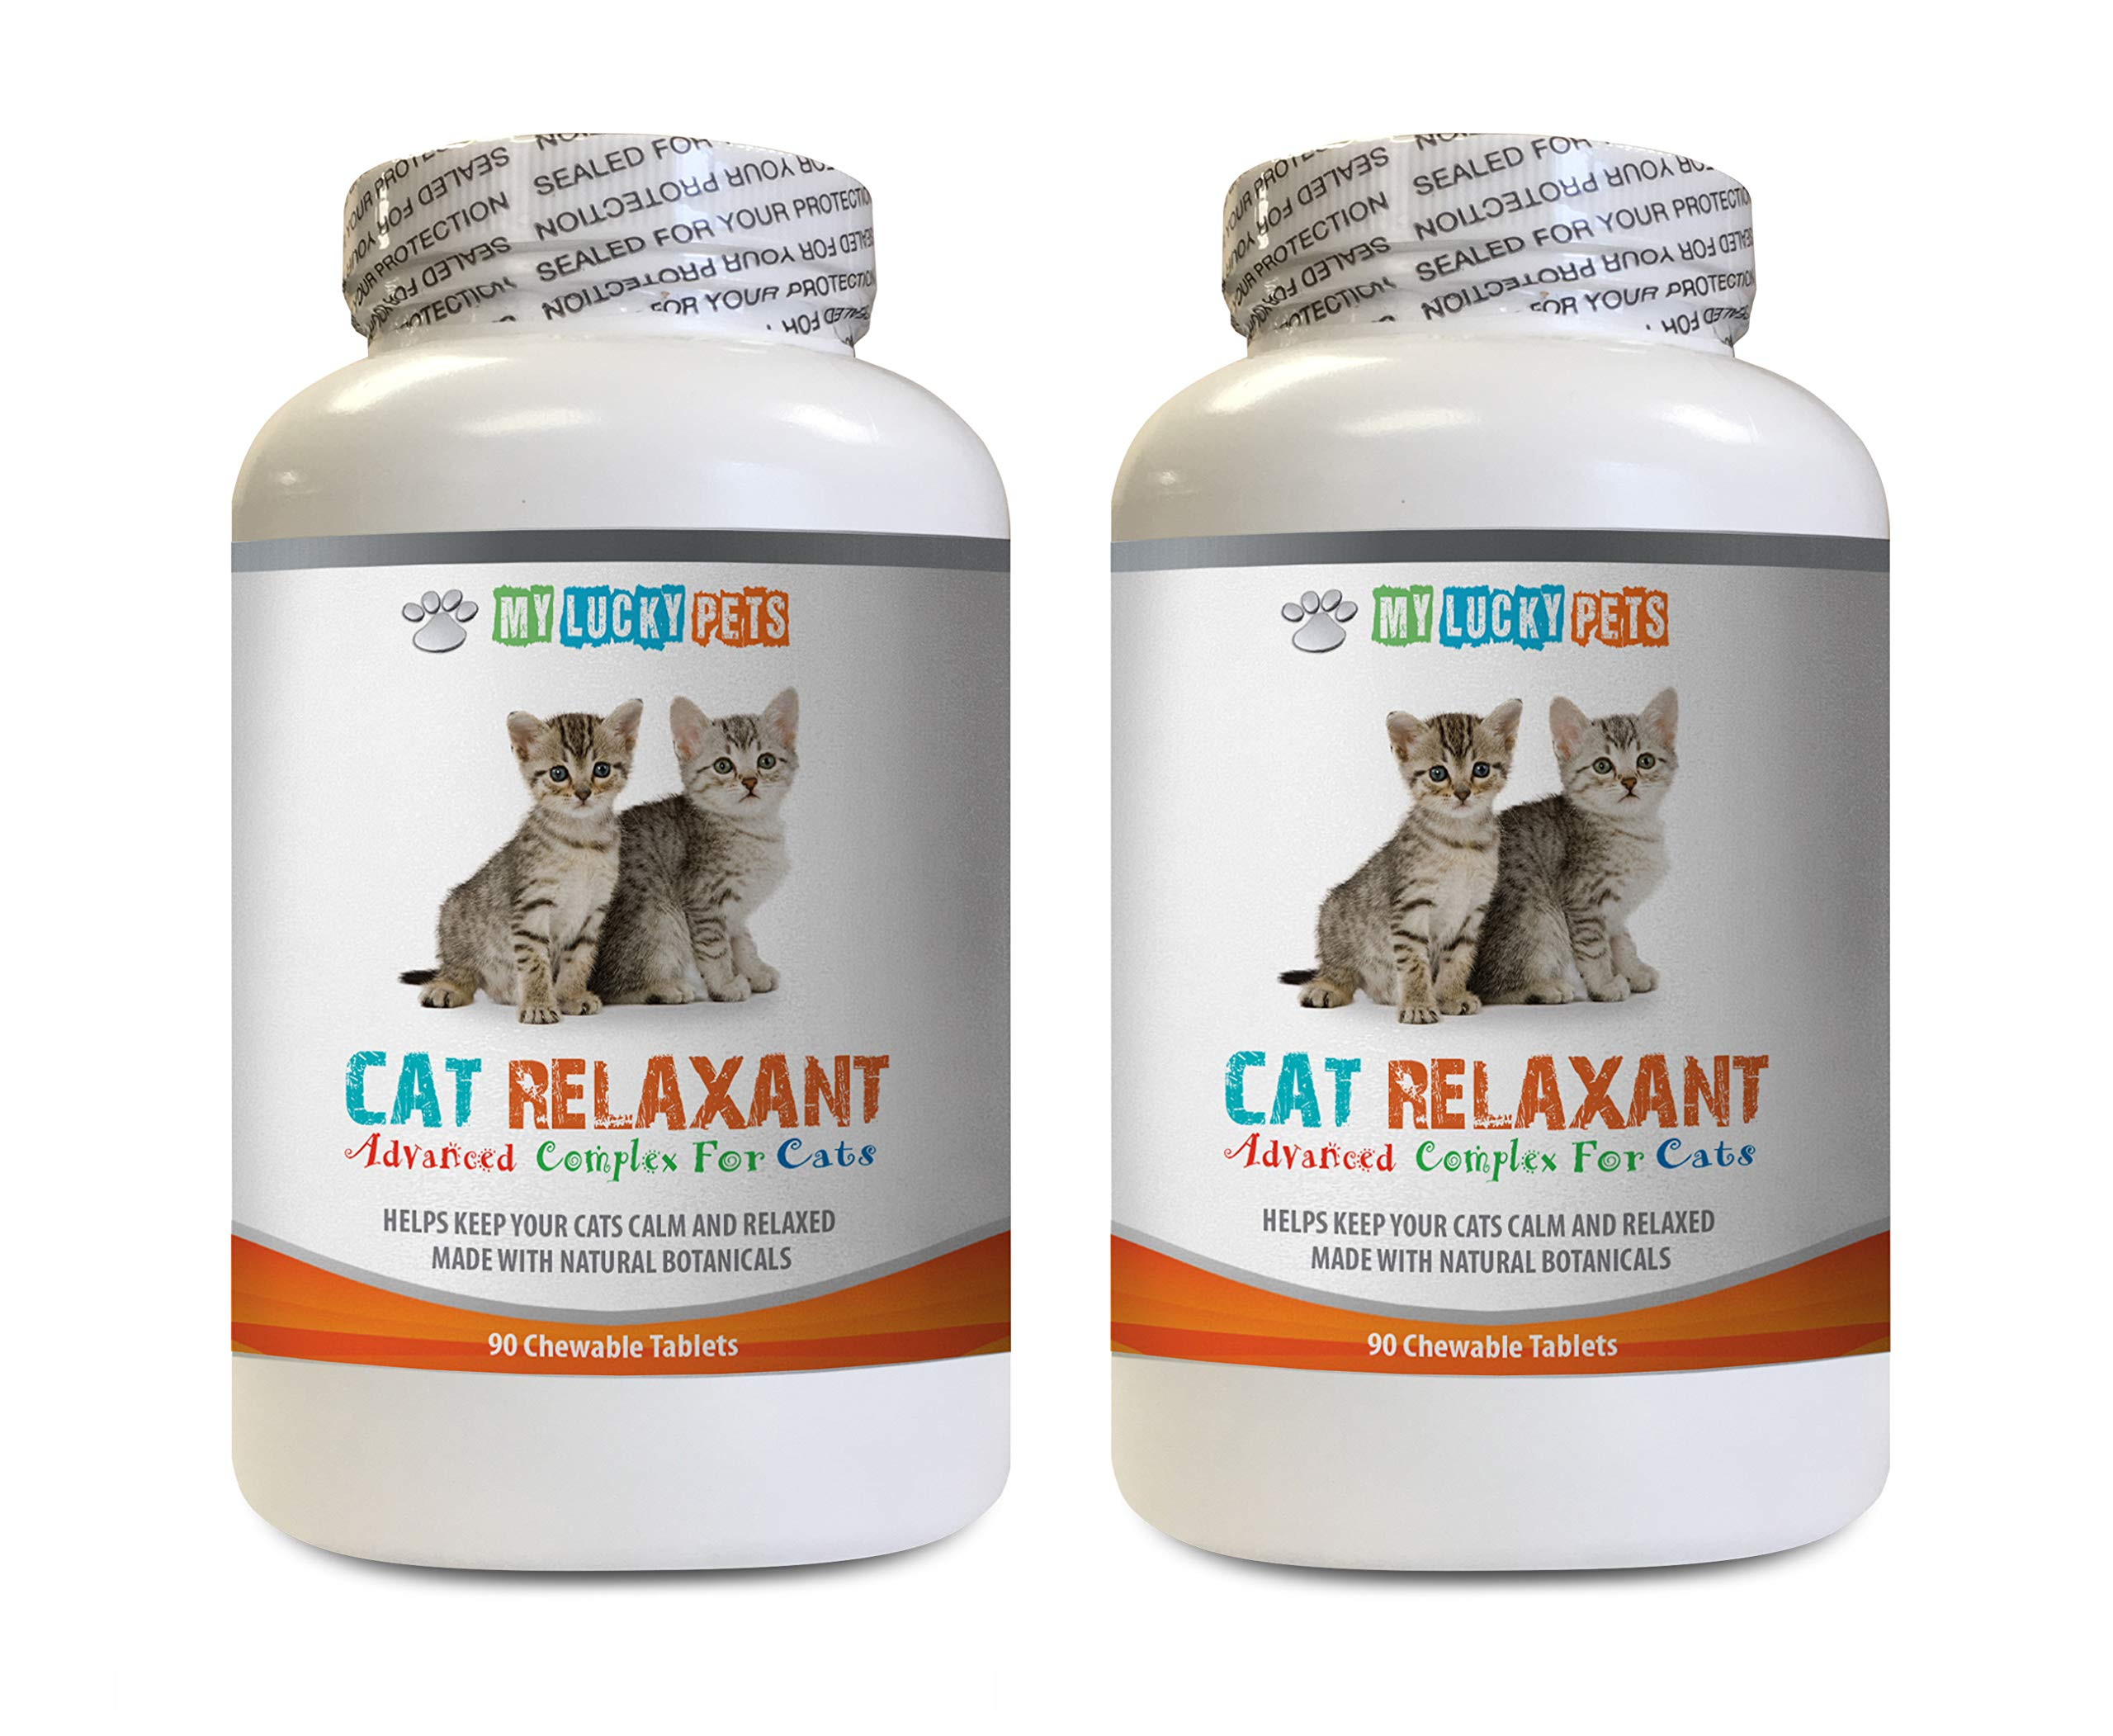 MY LUCKY PETS LLC cat Calming - Advanced Relaxant for Cats - Calms Down Your CAT - Anxiety Relief Complex - Natural Anxiety Relief for Cats - 2 Bottles (180 Chewable Tablets) by MY LUCKY PETS LLC